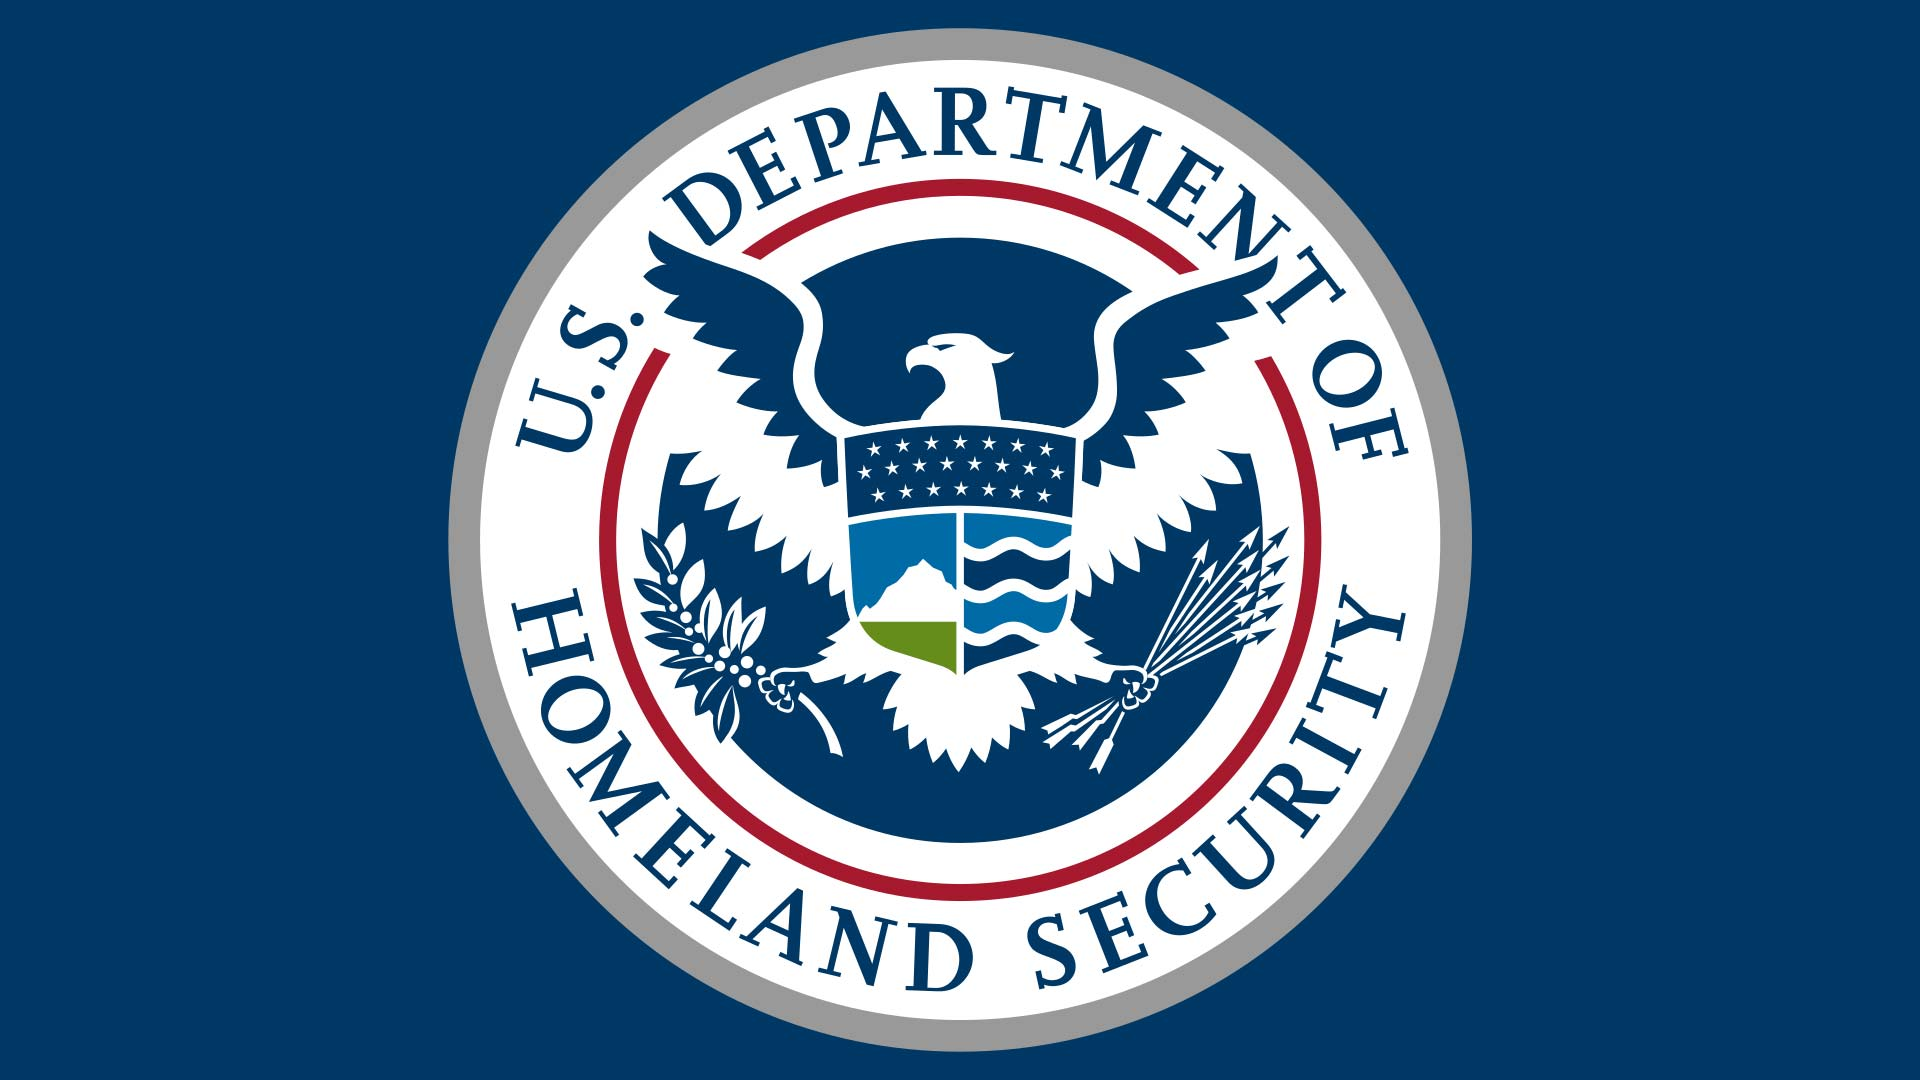 The seal of the Department of Homeland Security.